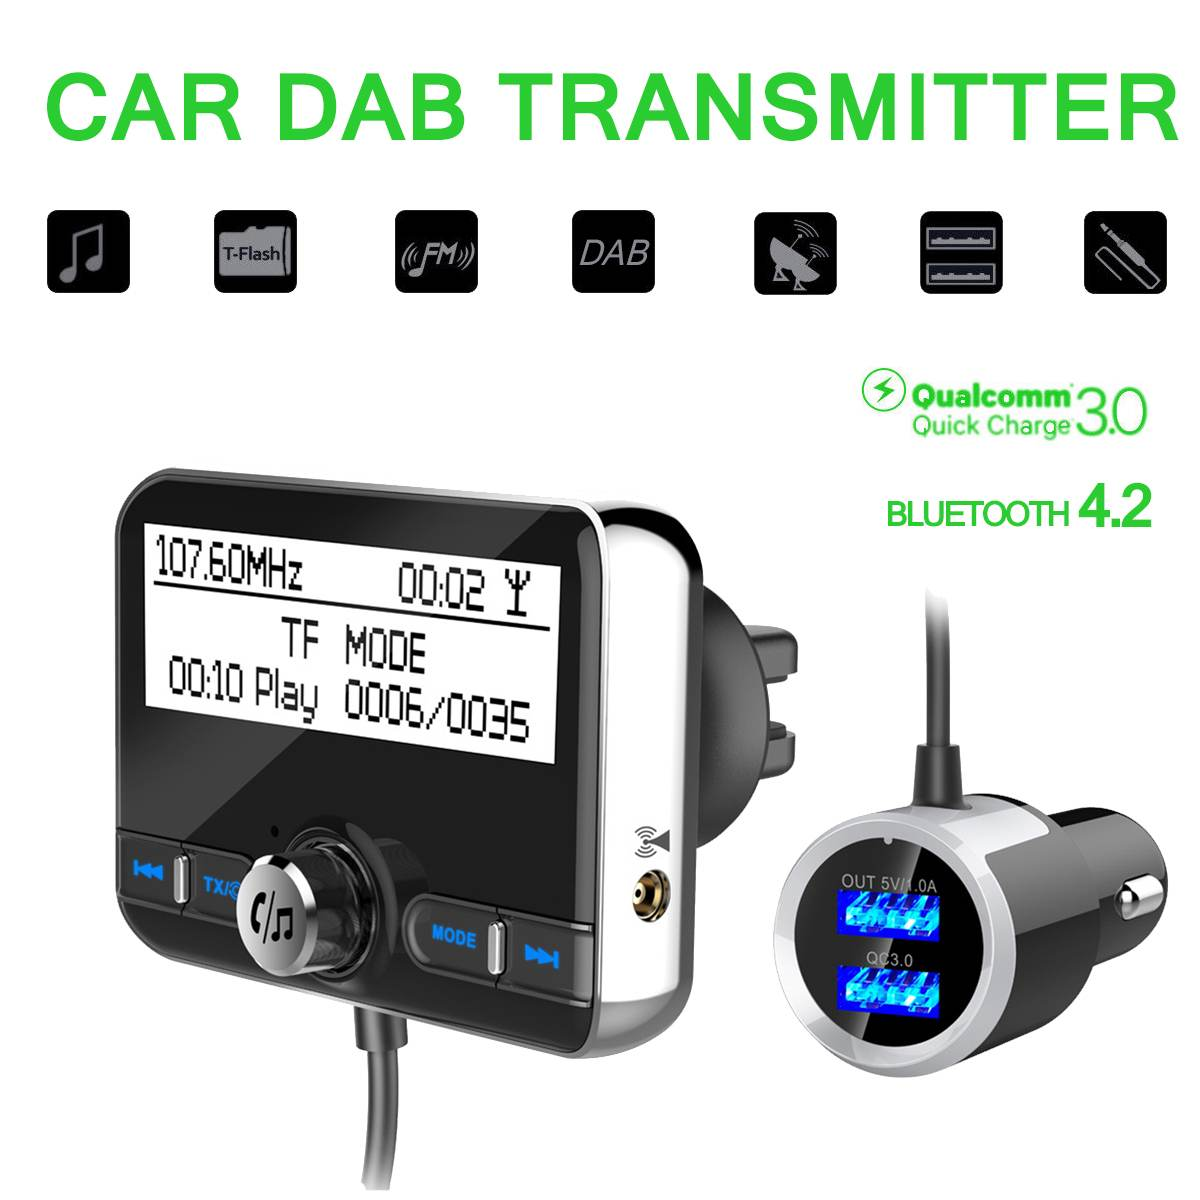 Multi function Car DAB Radio Receiver Tuner USB Adapter bluetooth FM Transmitter Antenna LCD Digital Radio Handsfree Calling